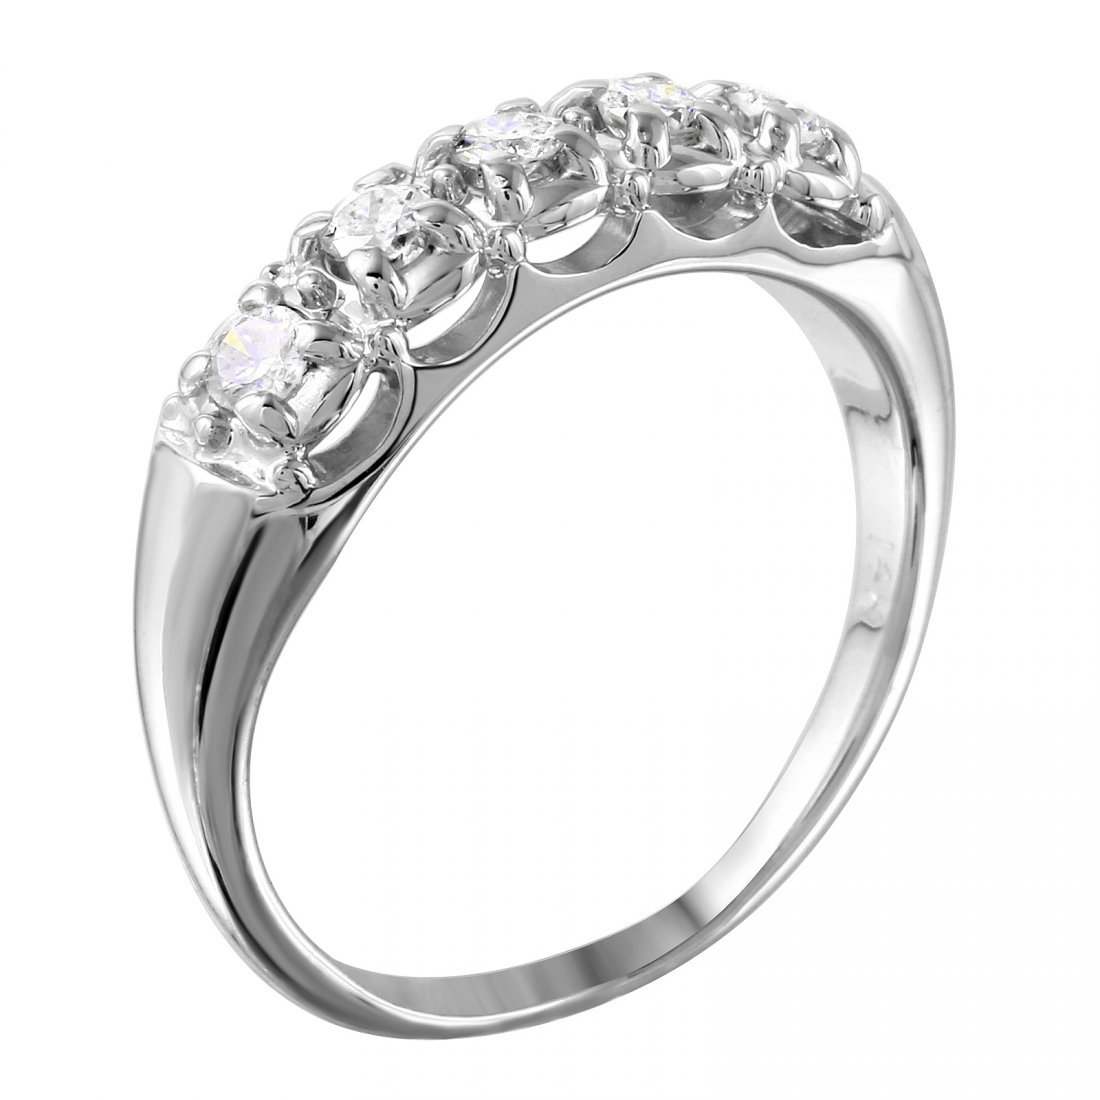 14K White Gold Diamond Wedding Band - 2